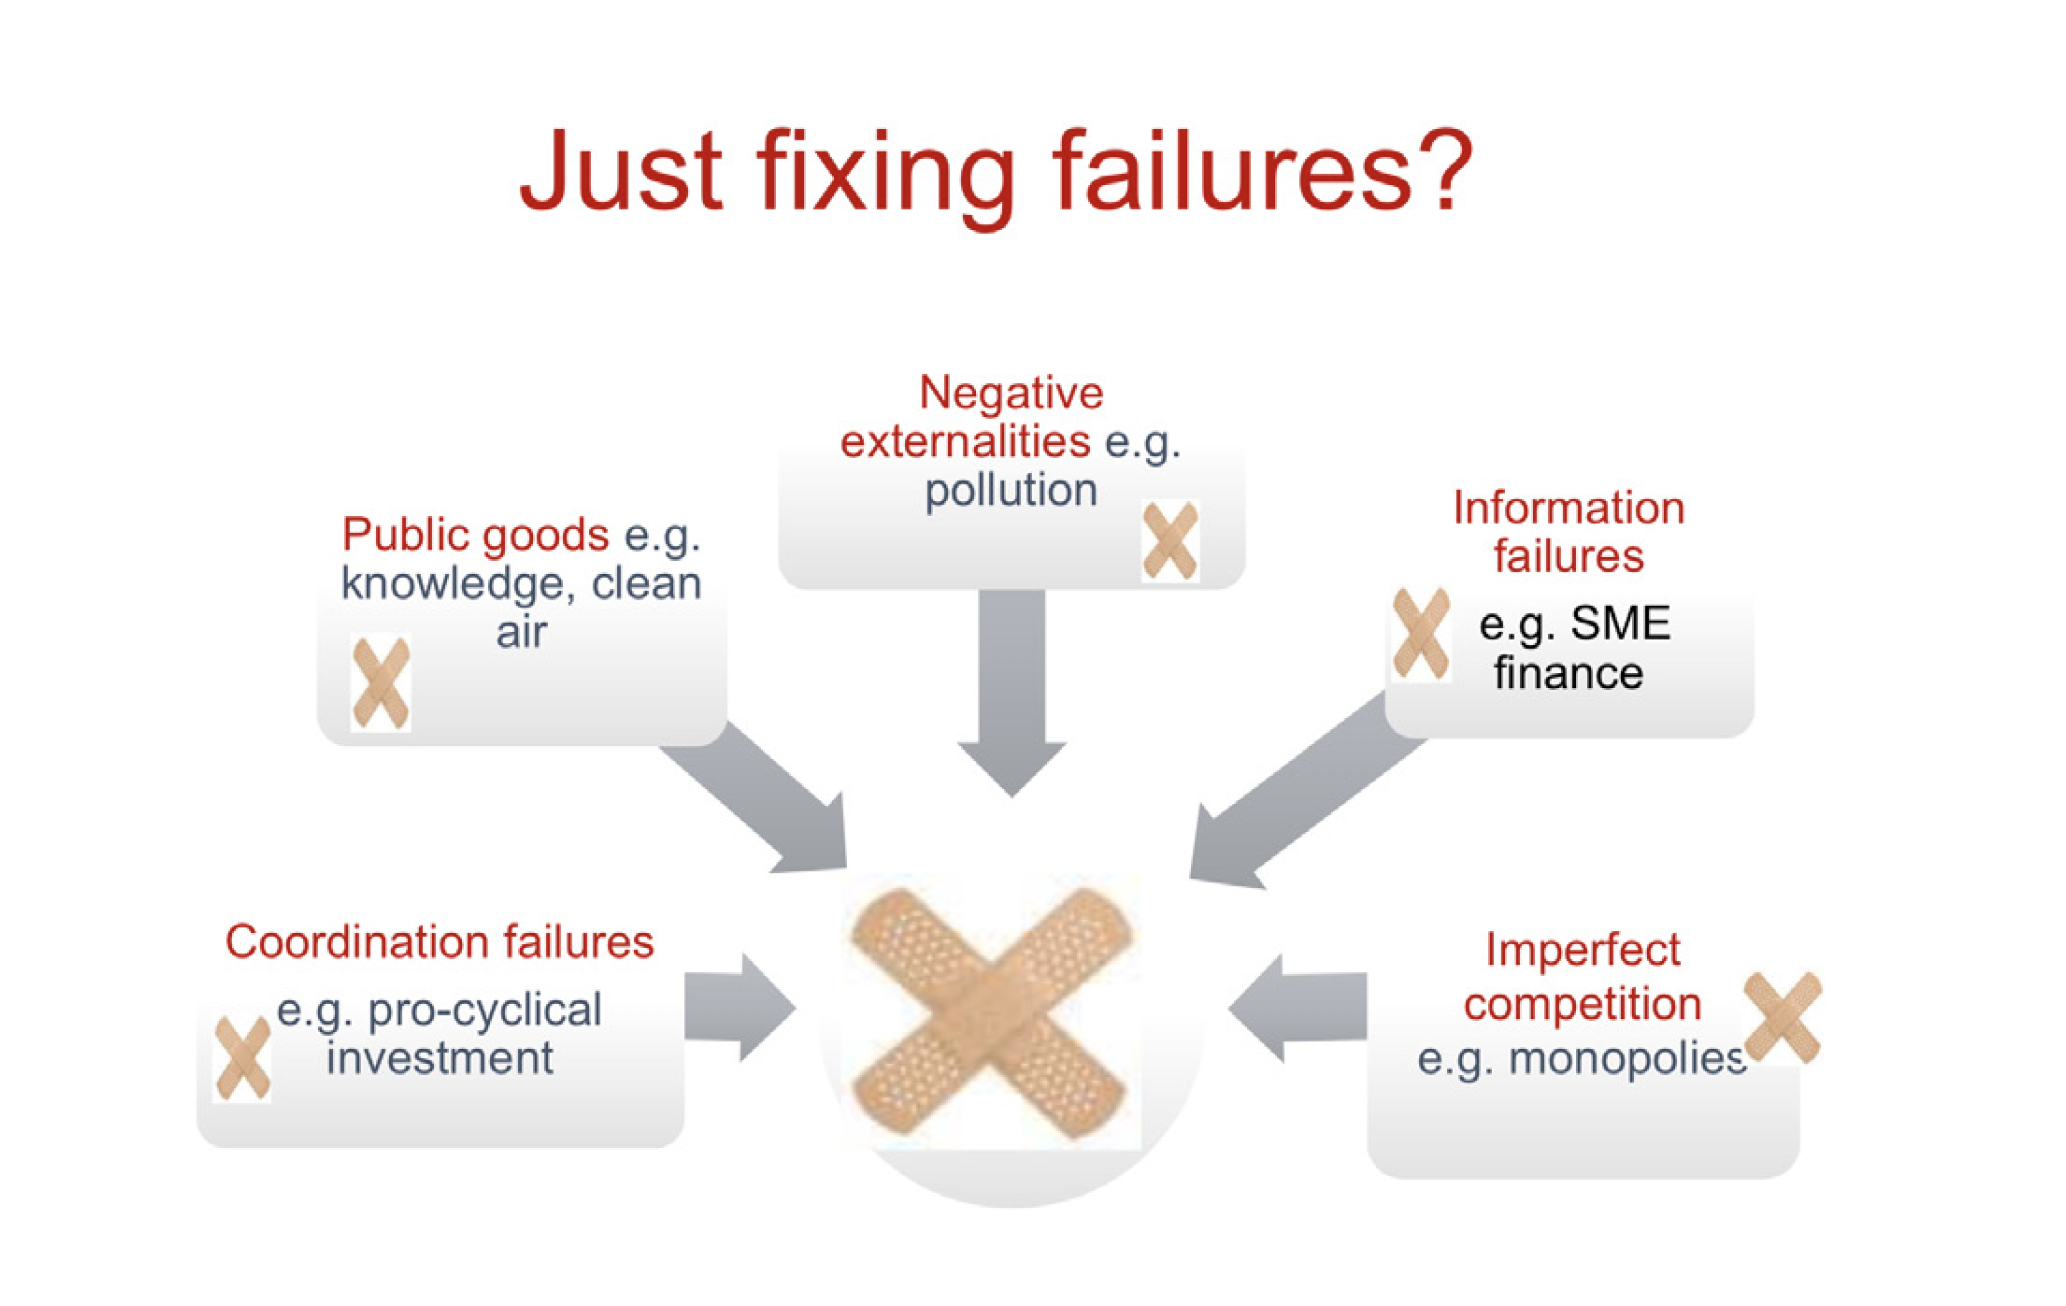 03__Not just fixing failures